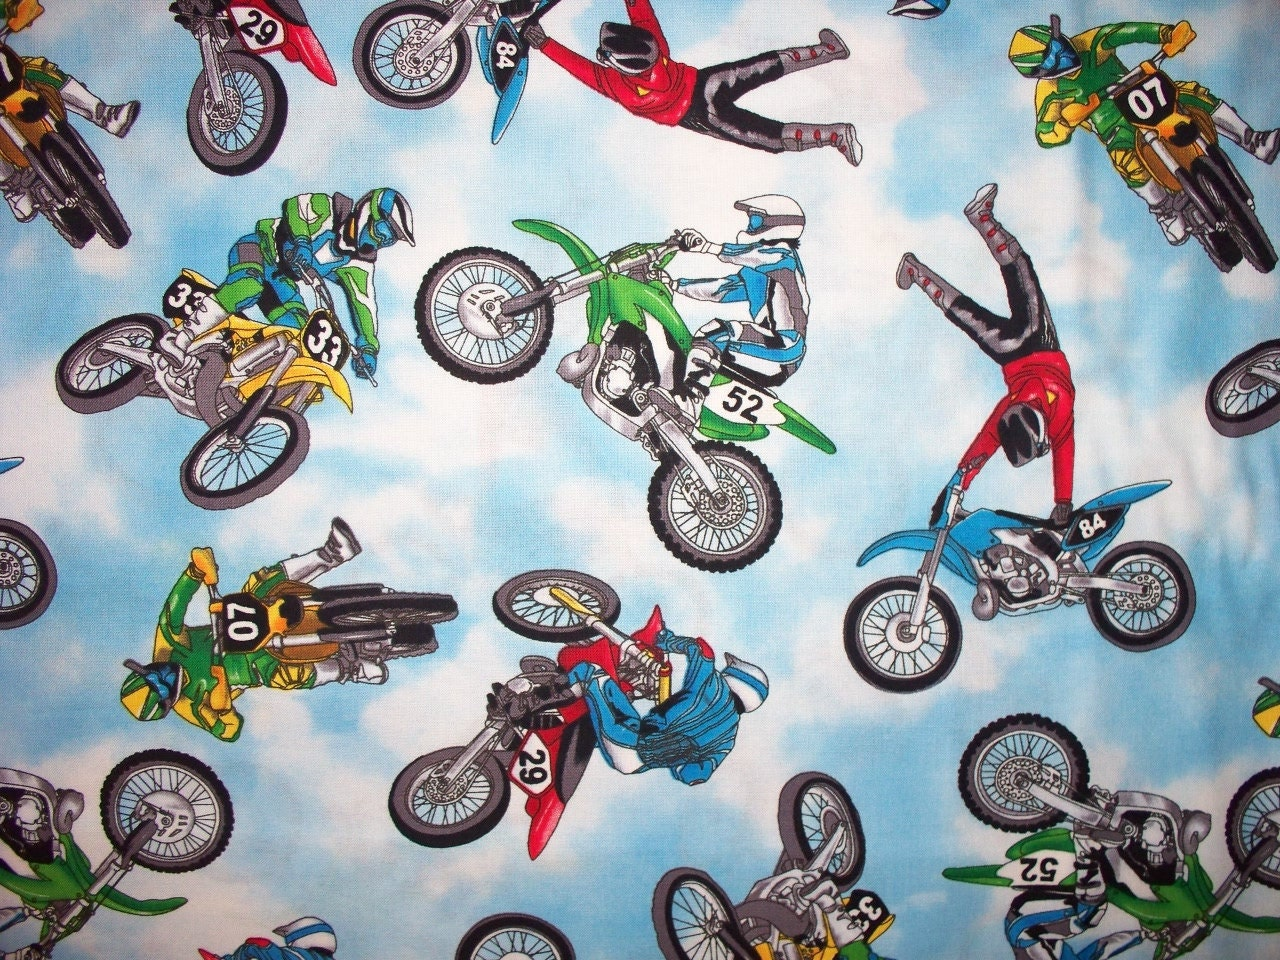 Motocross Motorcycle Racing Bikes Blue Cotton Fabric Fat